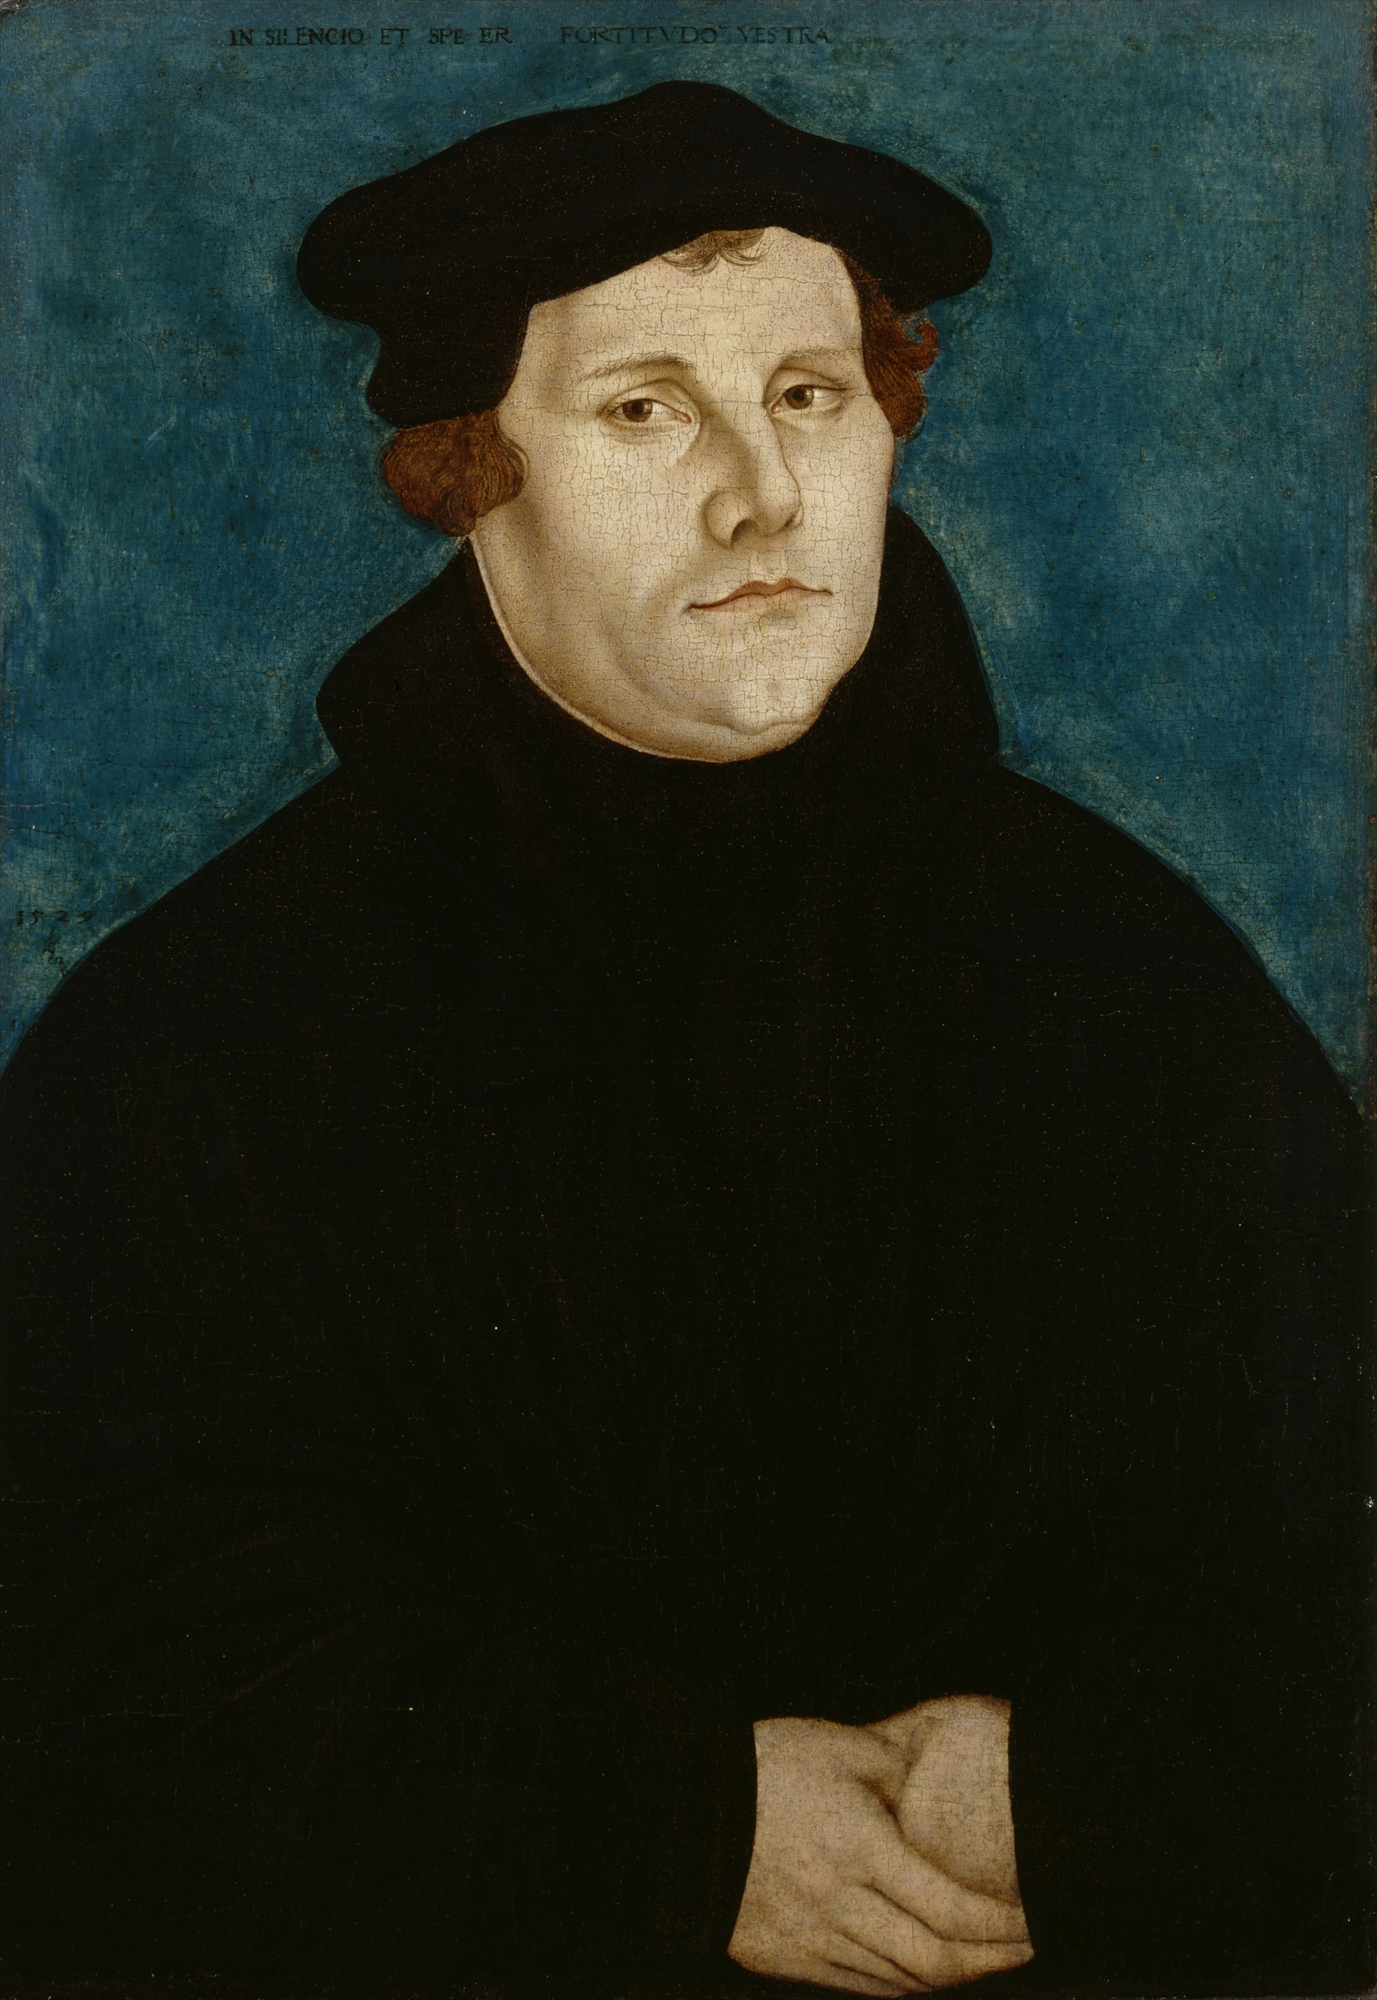 1517: Luther and the Protestant Reformation